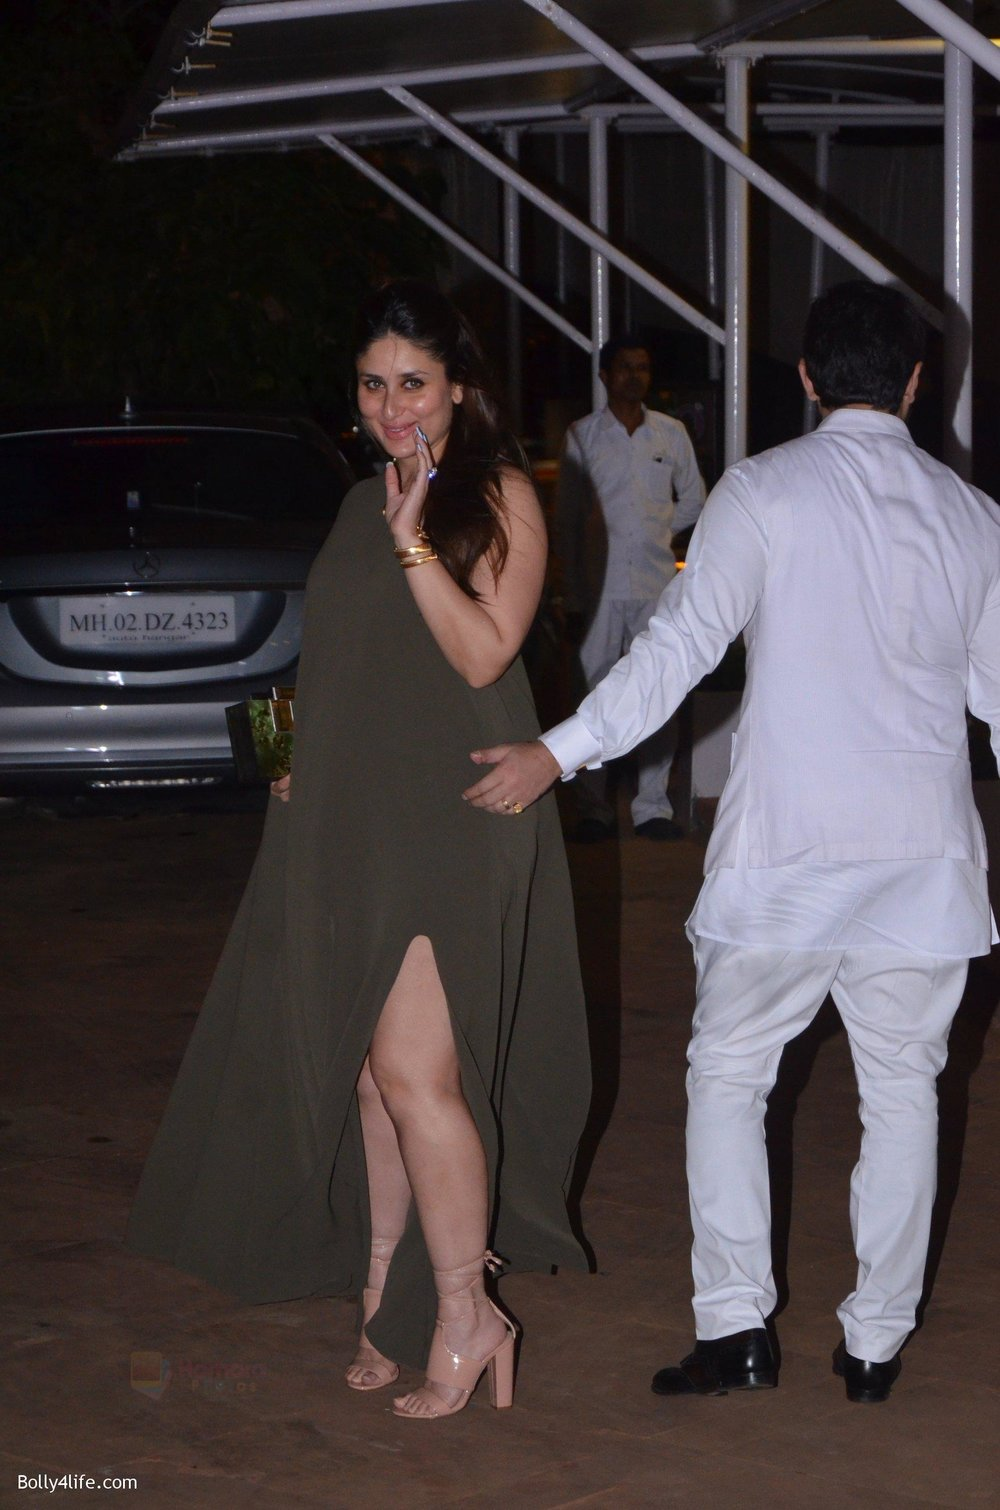 Saif-Ali-Khan-Kareena-Kapoor-at-Reema-jain-bday-party-in-Amadeus-NCPA-on-28th-Sept-2016-877.jpg